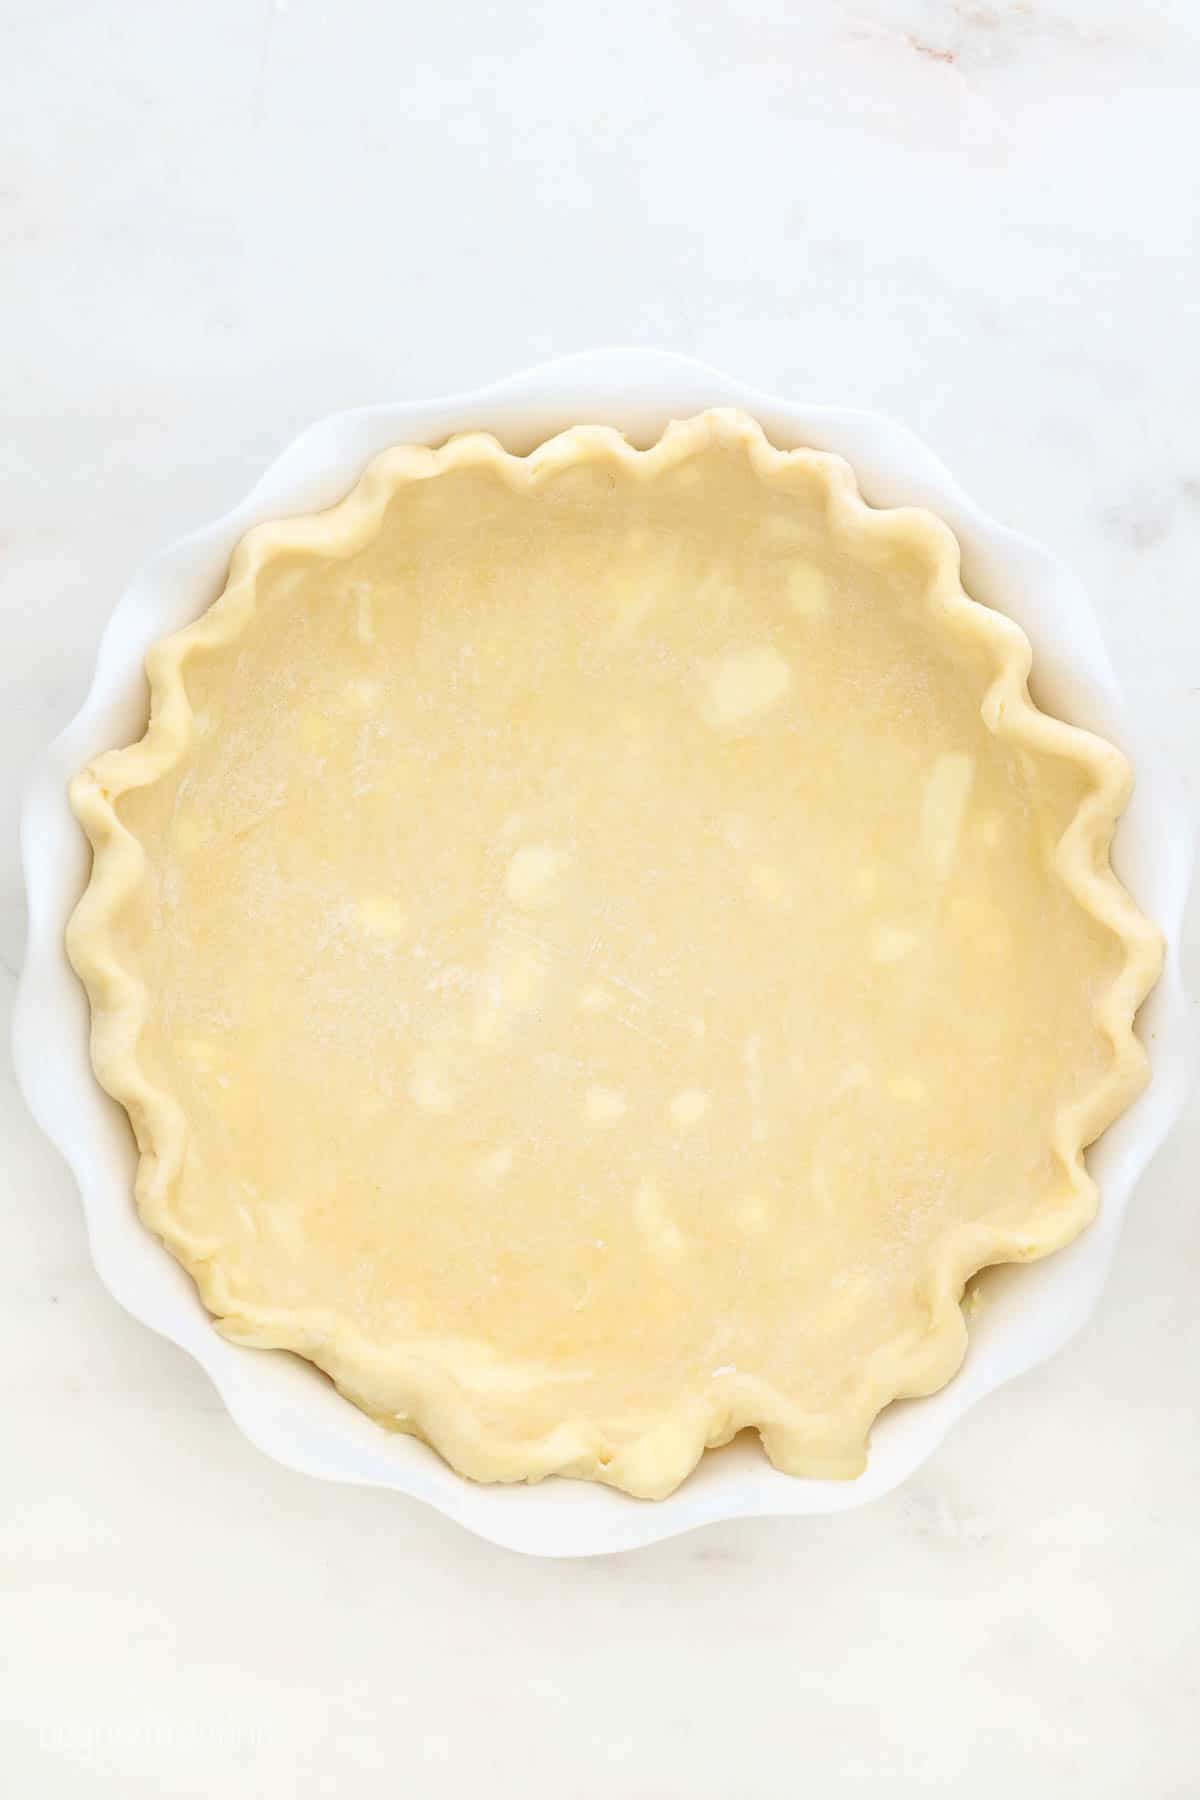 An unbaked pie crust with crimped edges and chunks of cold butter in it